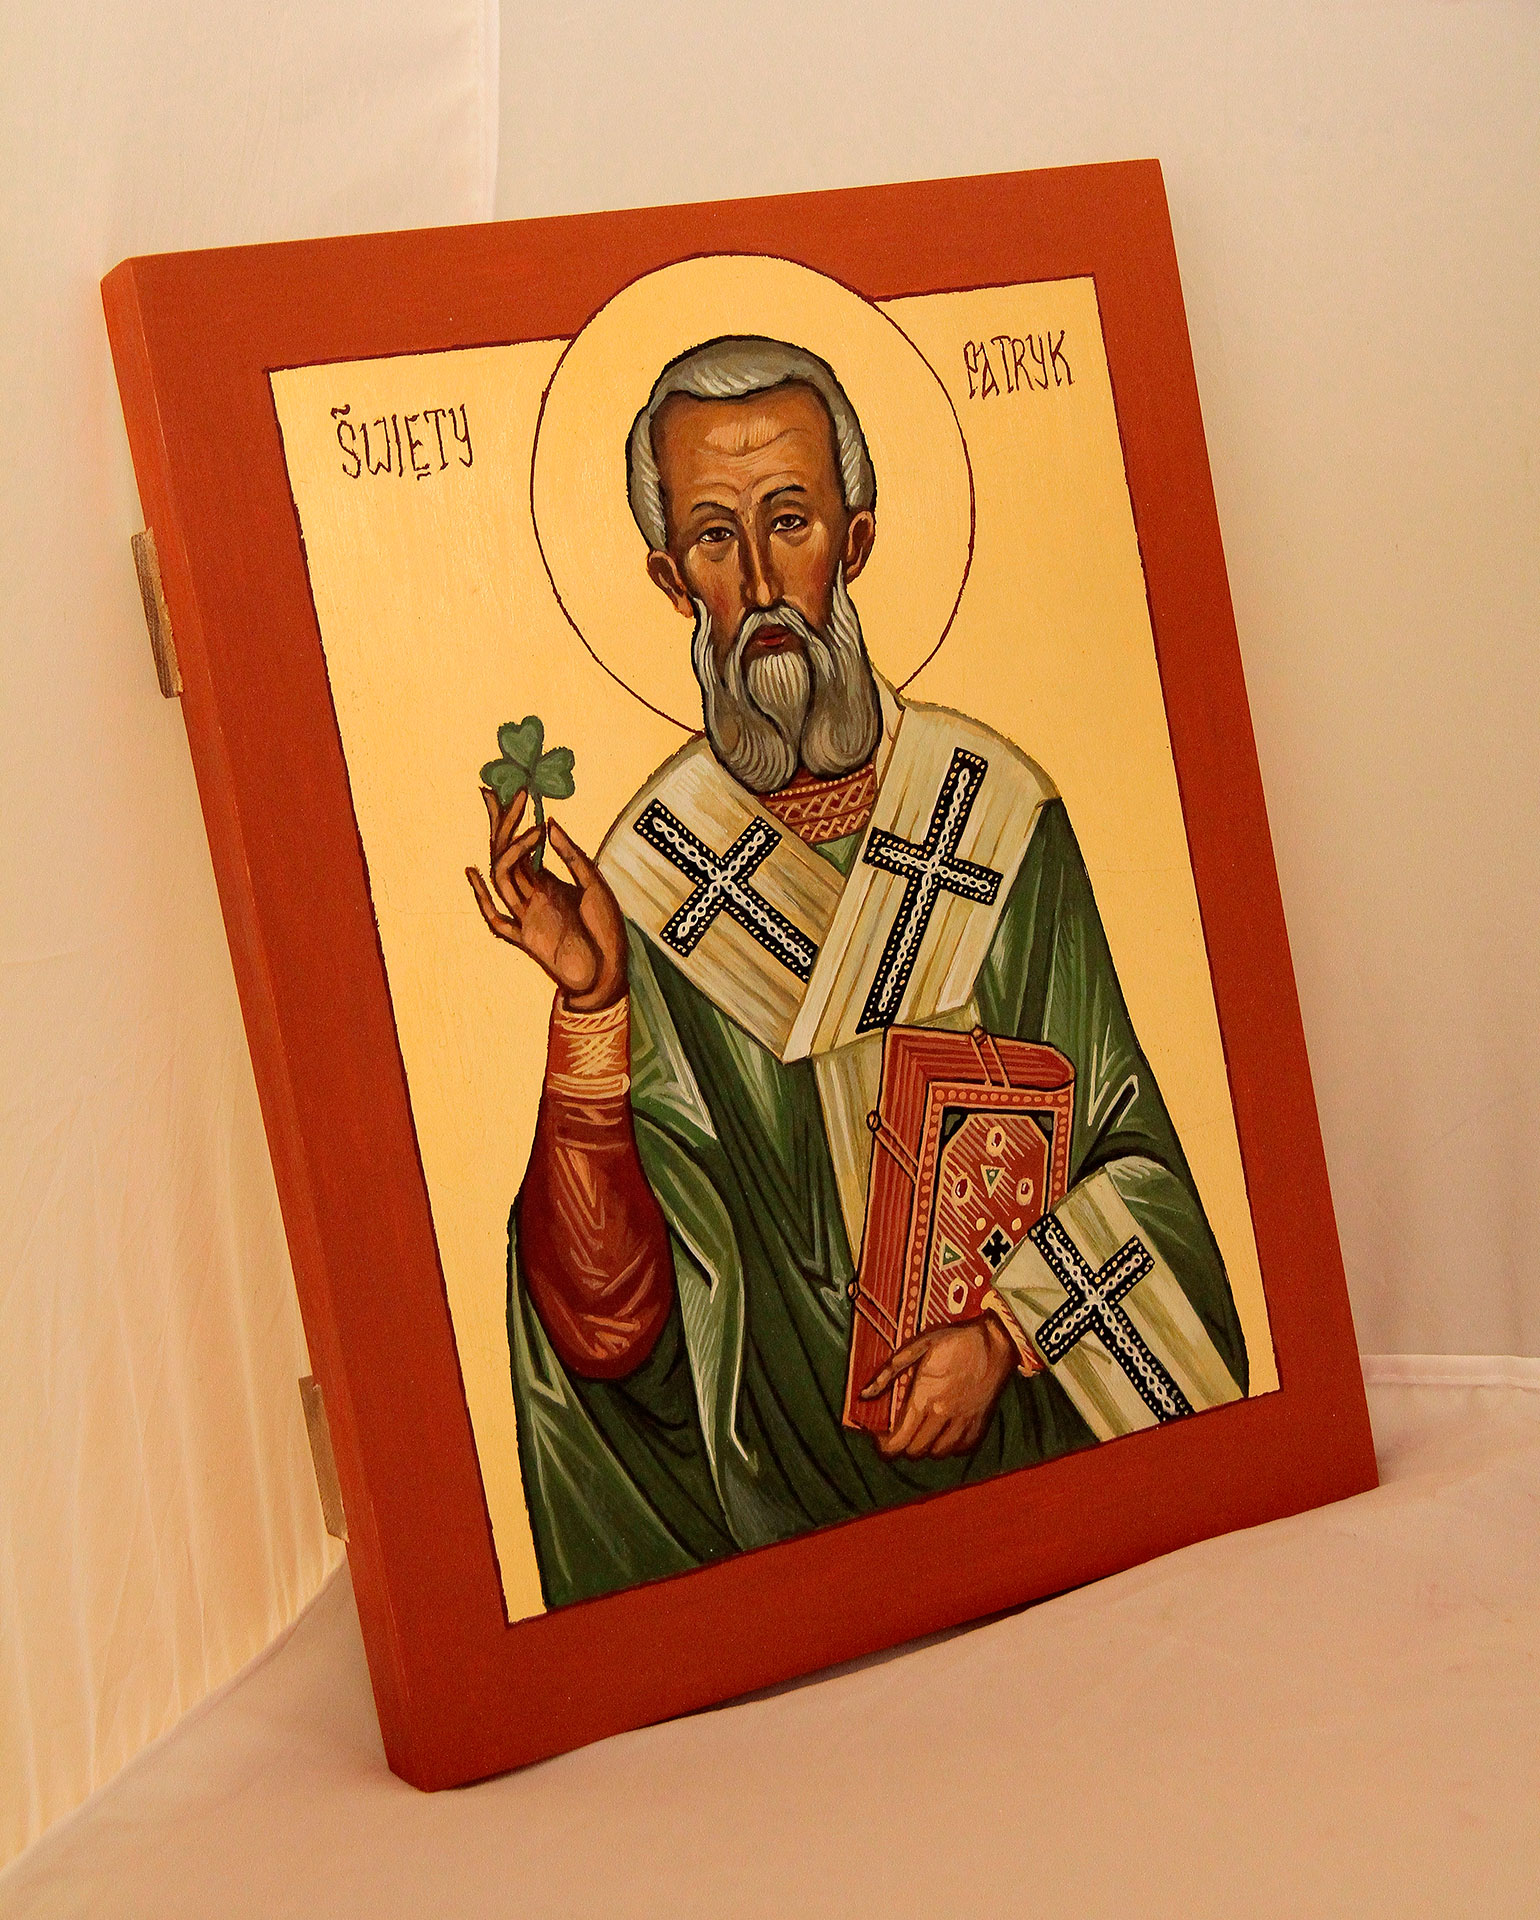 Saint Patrick - Illustration